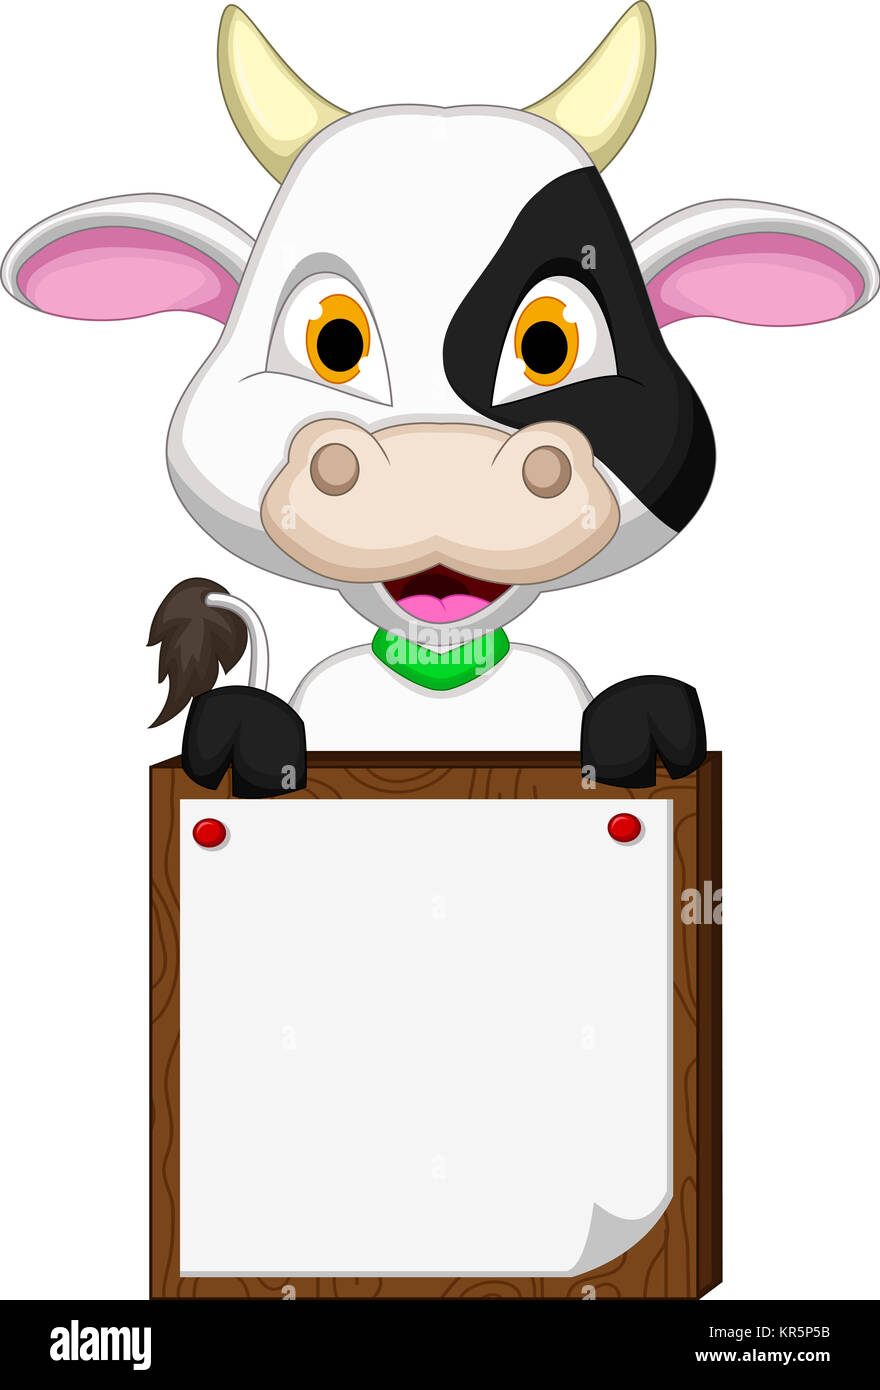 cow clipart.html